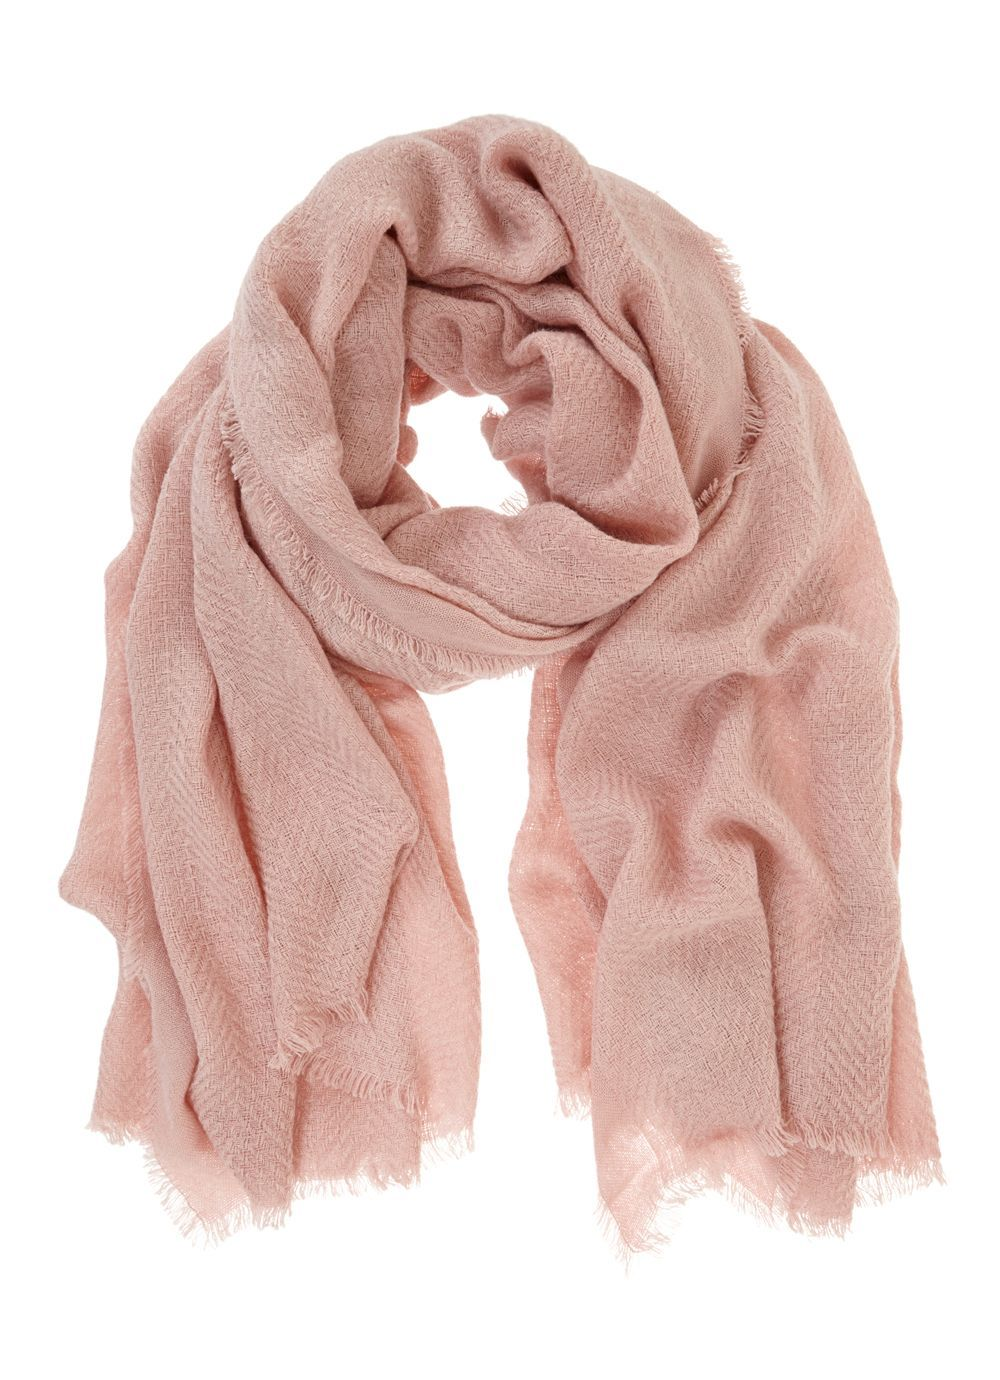 Rose Plain Textured Scarf, Pink - predominant colour: blush; occasions: casual, creative work; type of pattern: standard; style: regular; size: standard; material: fabric; pattern: plain; season: a/w 2016